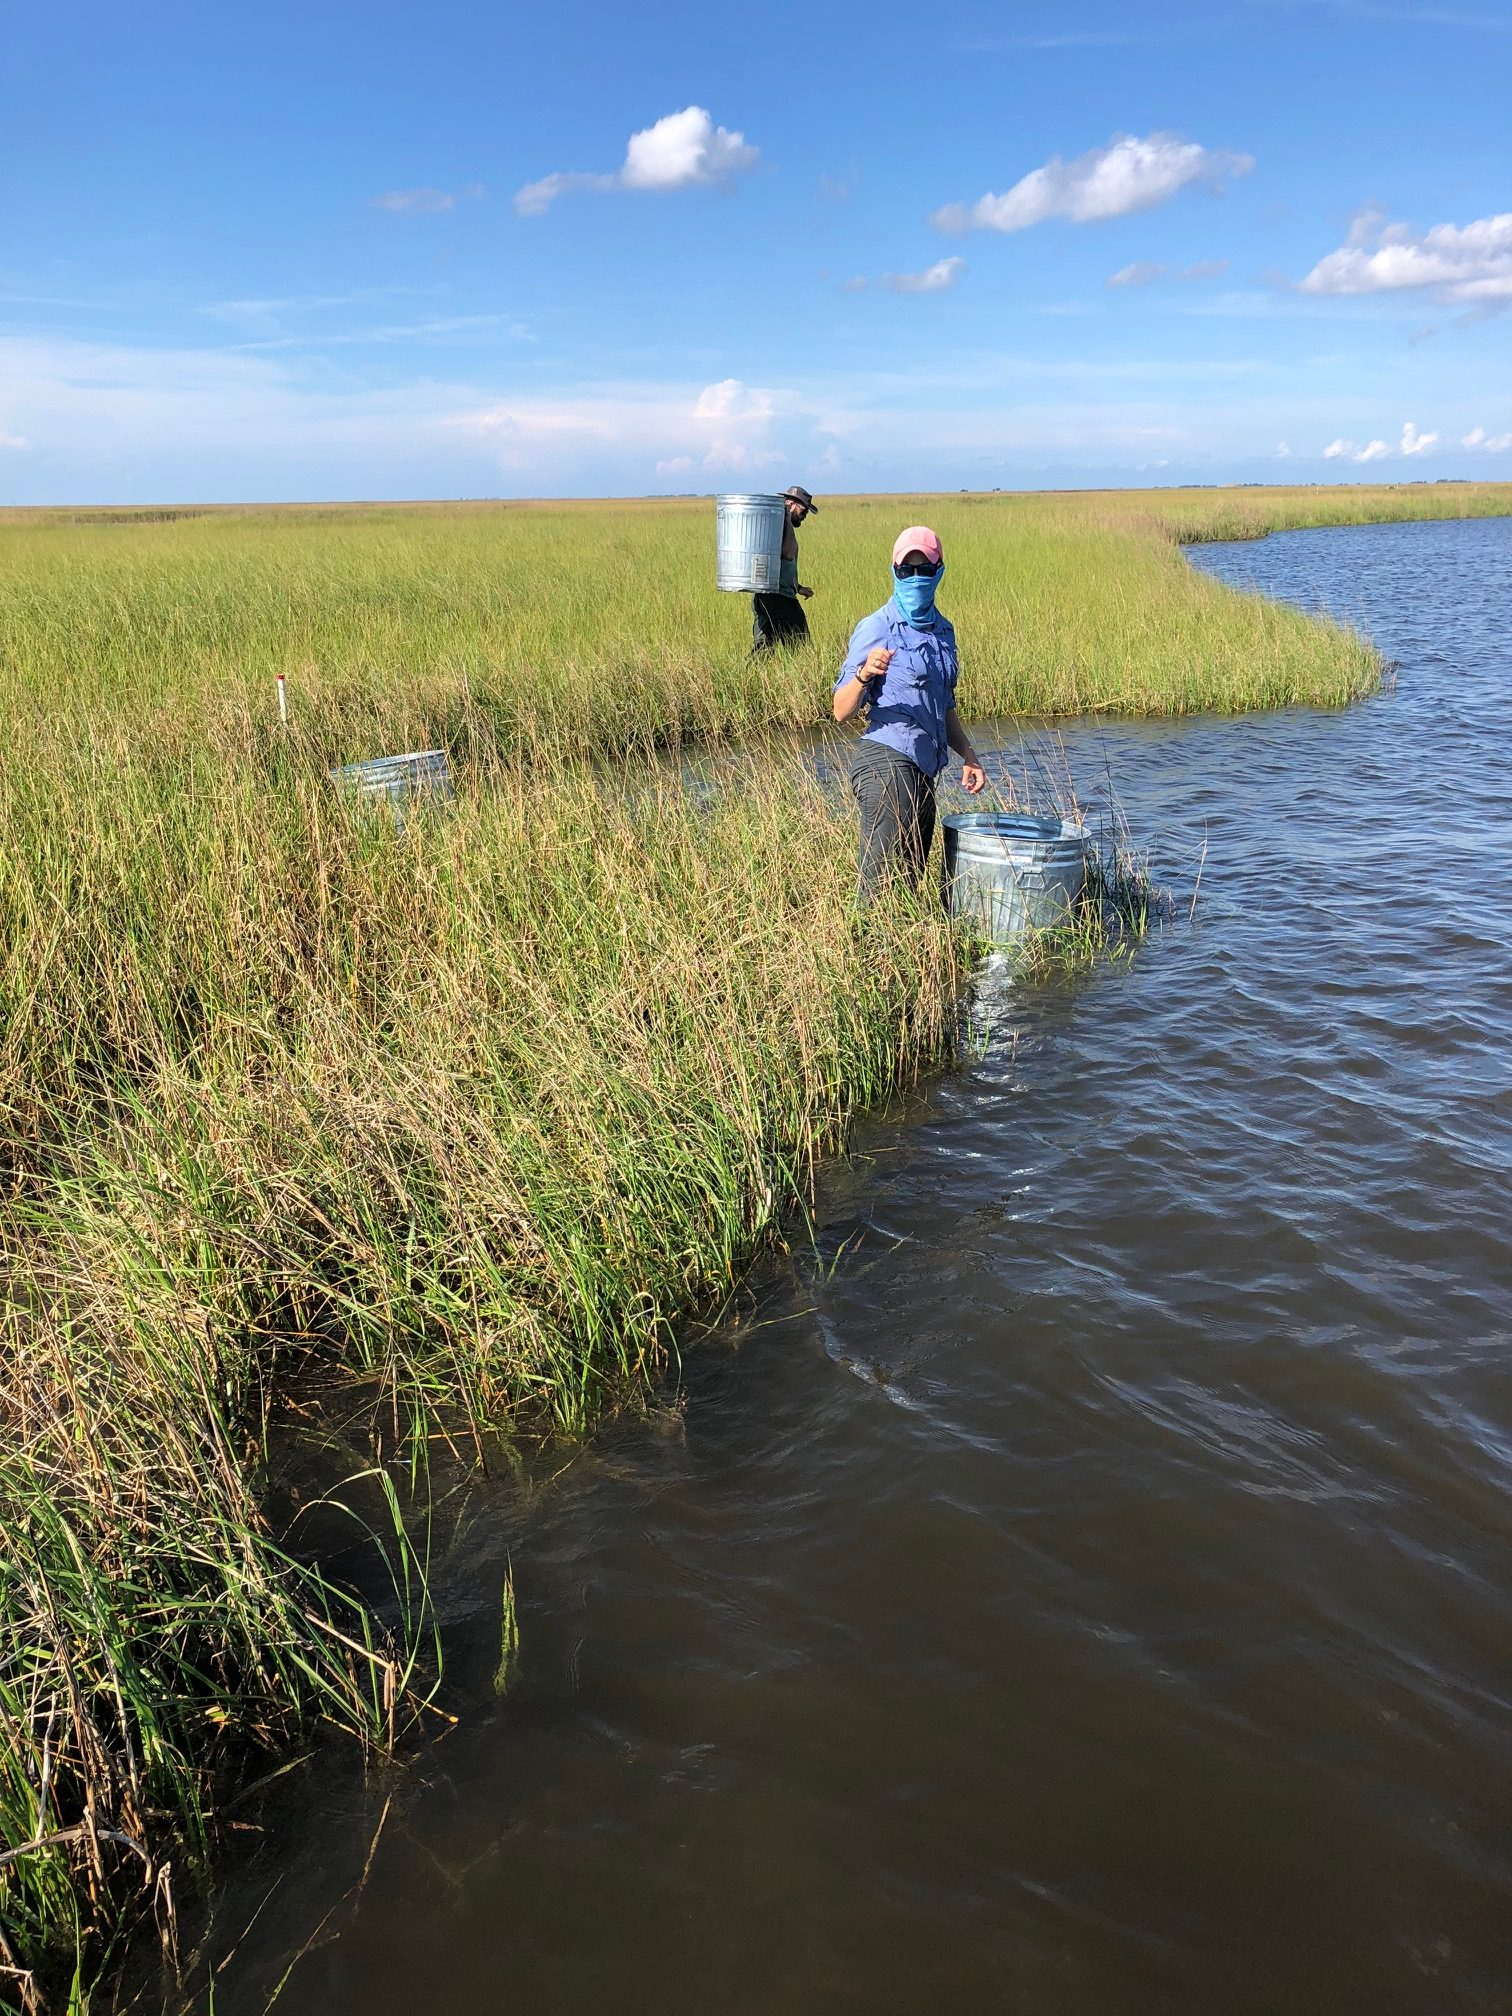 Cylinders are placed along the marsh edge and water pumps are used to suction all the water out and filter for small epifaunal organisms. Photo credit: C. Martin